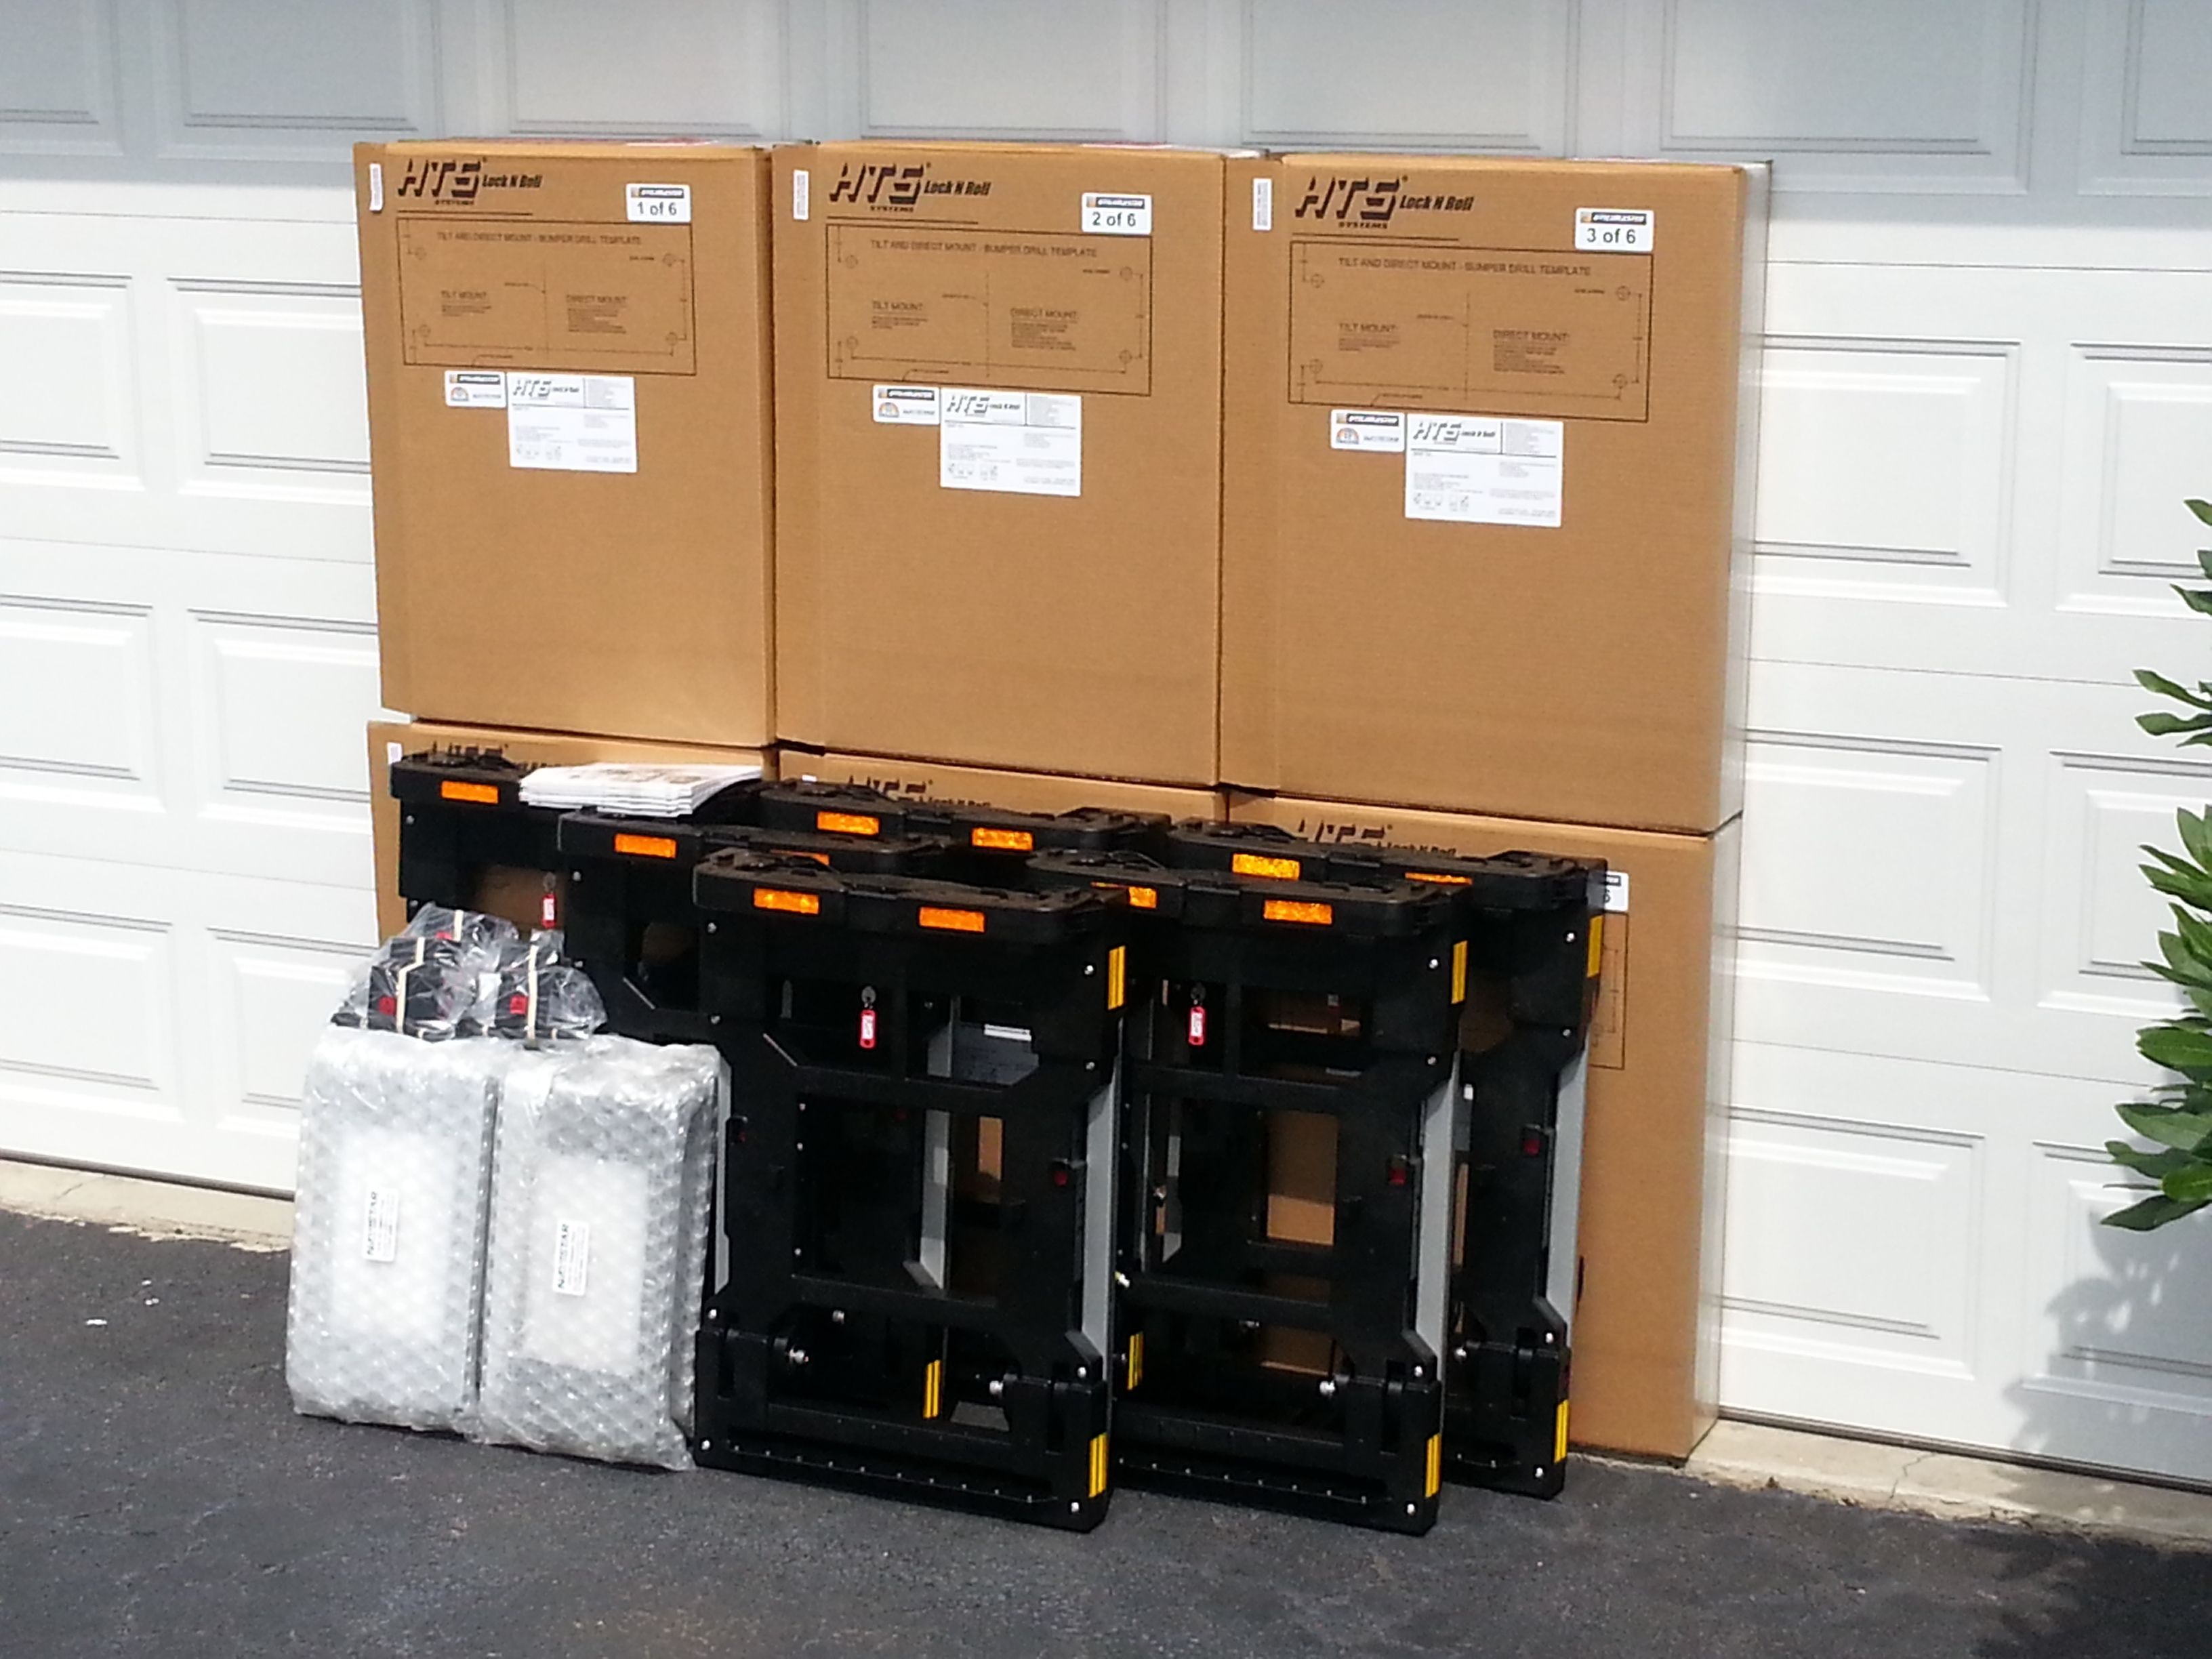 HTS-10T Tilt Mount units for IDG Industrial Distribution Group, shipping United Parcel Service.